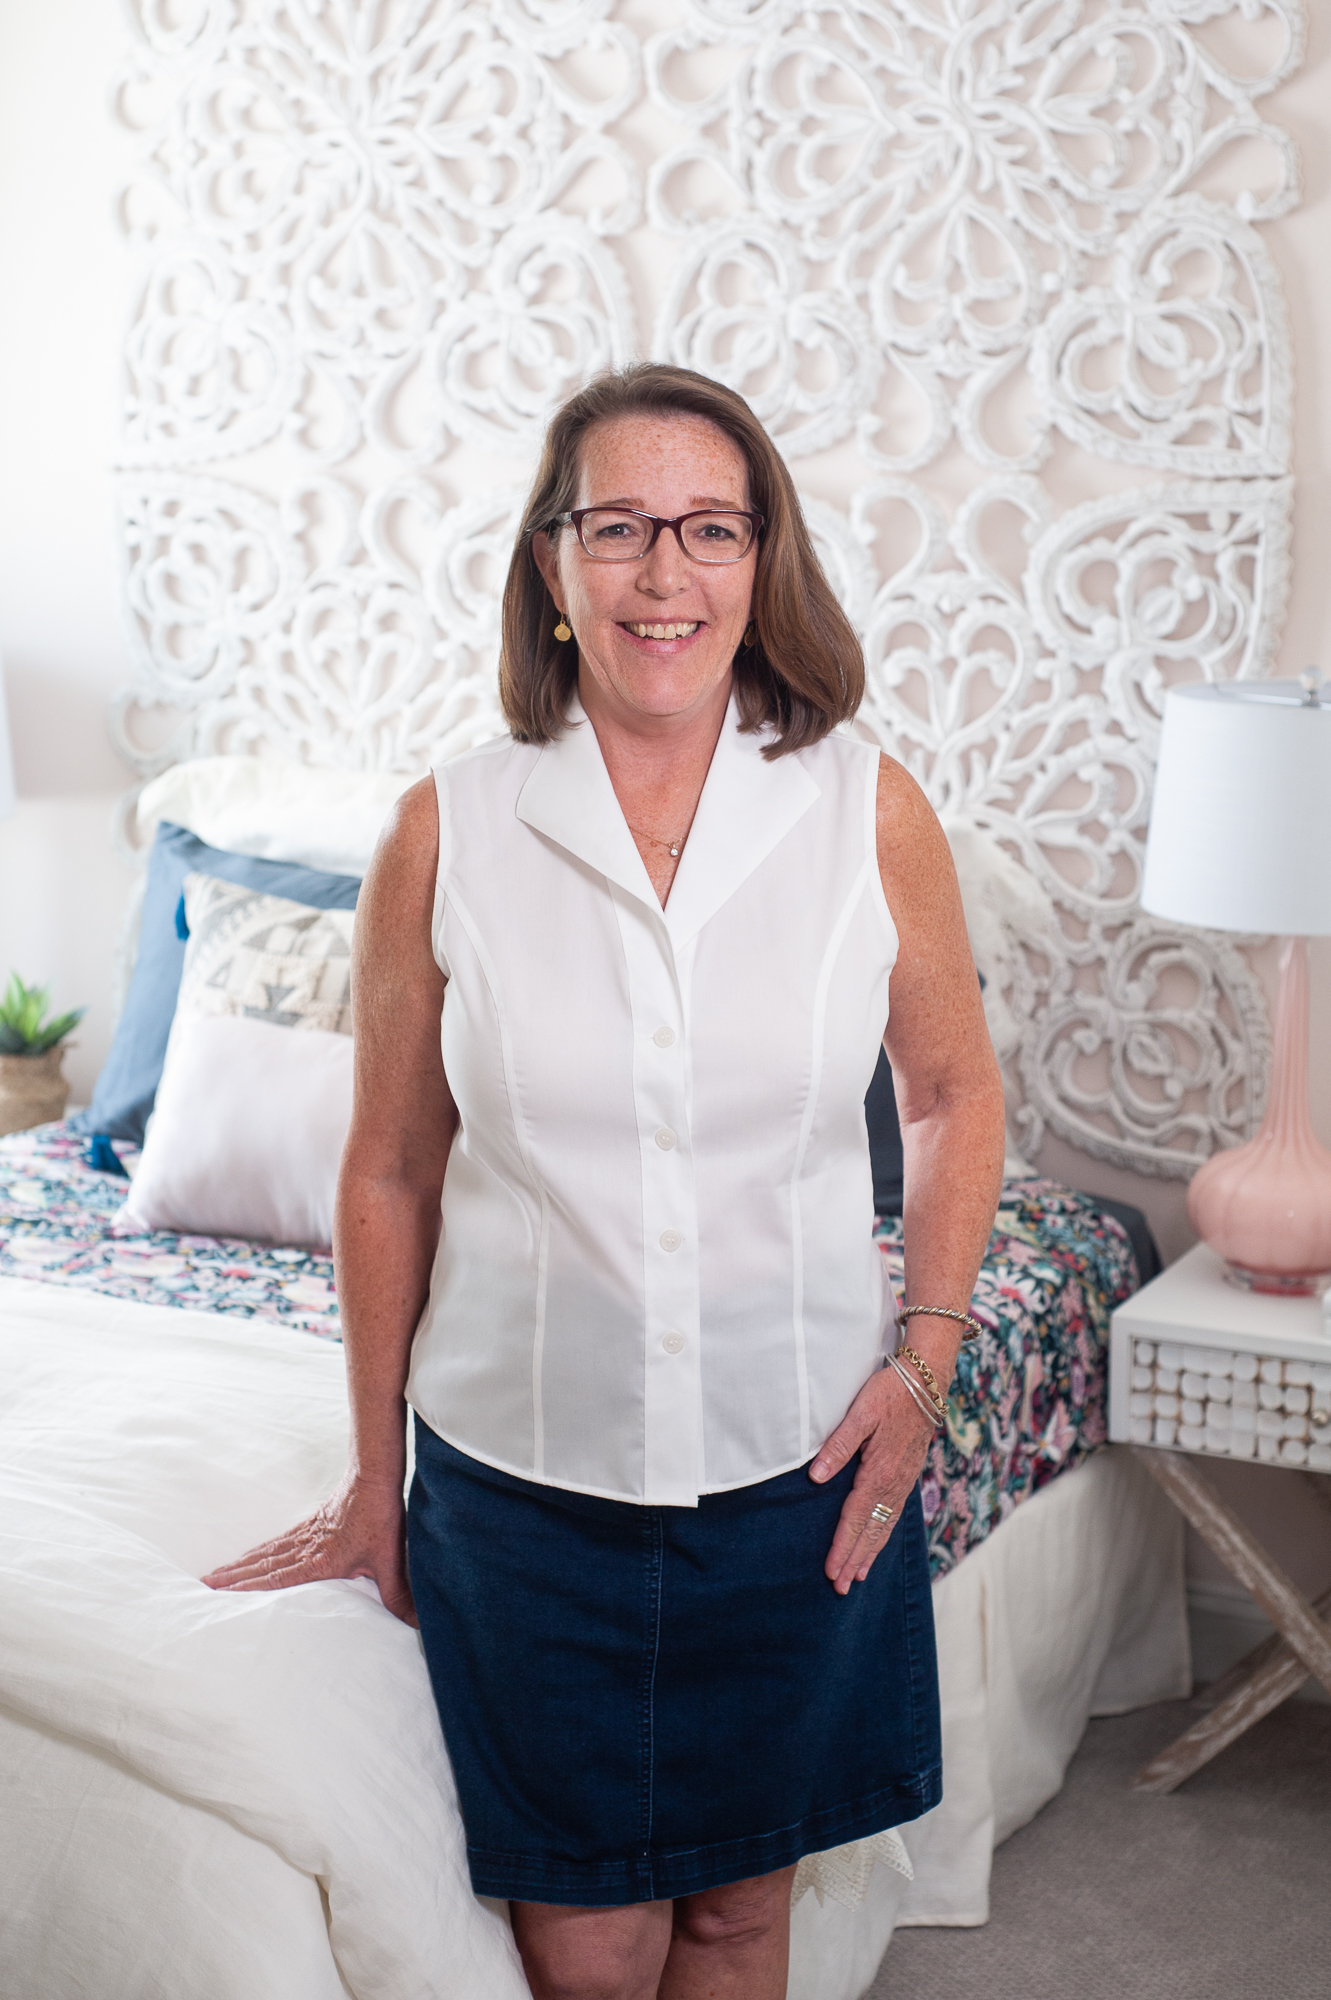 MEET SUE - The woman behind our corporate interiors department!